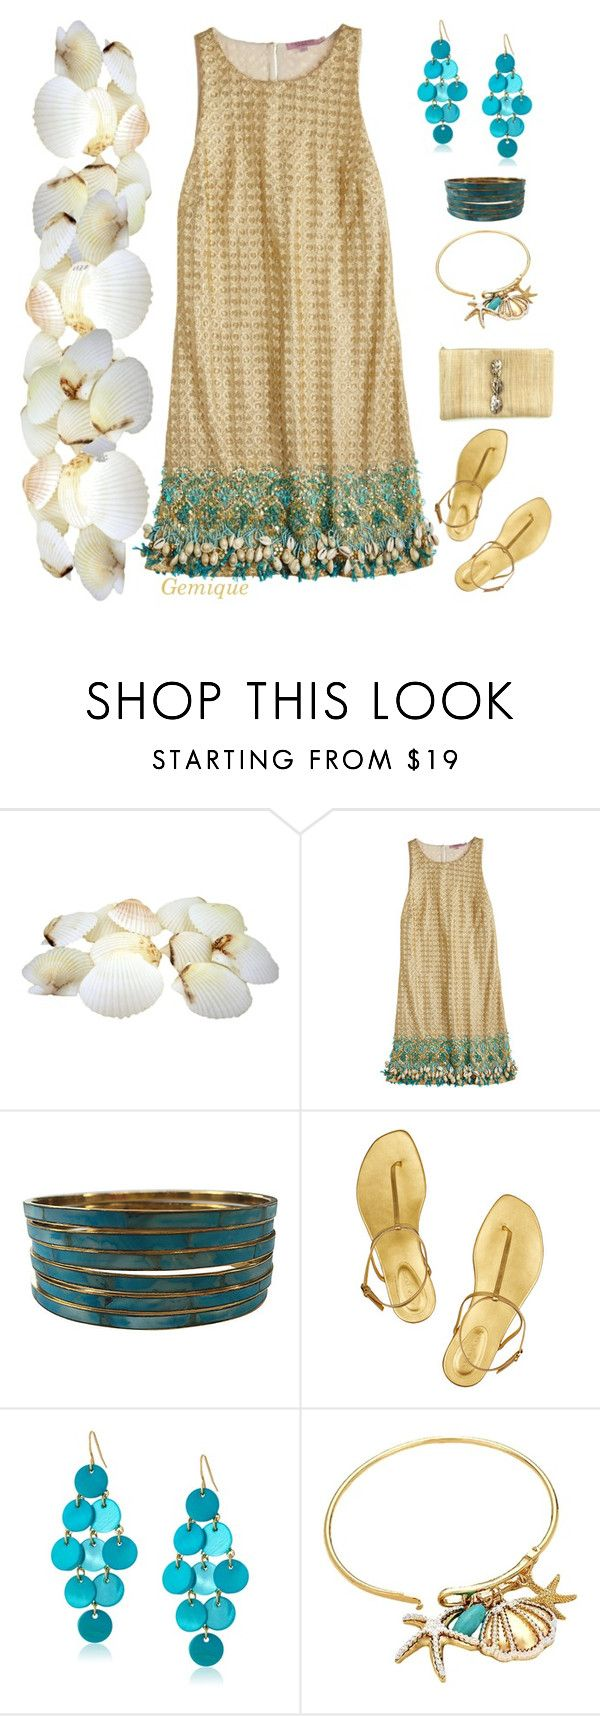 """""""Sea Shell Summer..."""" by gemique ❤ liked on Polyvore featuring Calypso St. Barth, Sergio Rossi, Kenneth Cole, women's clothing, women, female, woman, misses and juniors"""